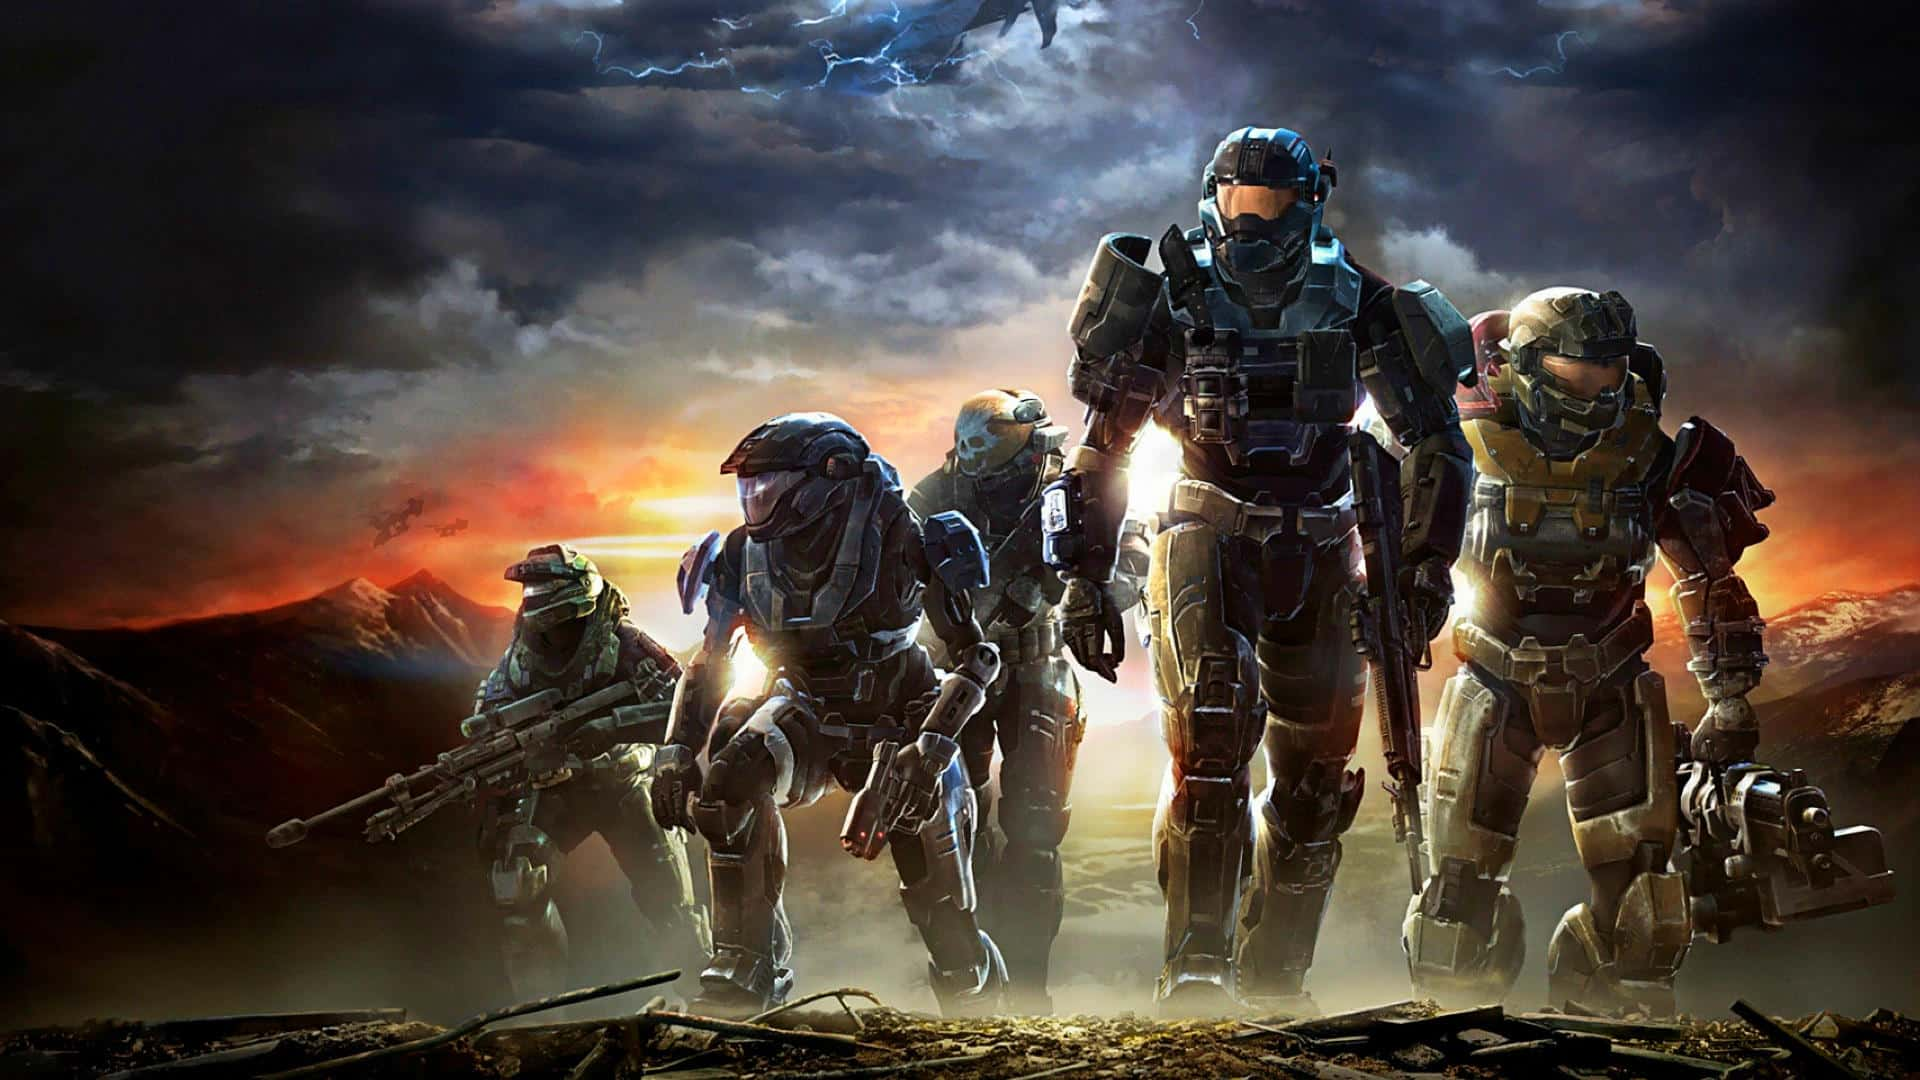 Halo: Reach VR Mod Is 'On Ice' As Dev Joins Series